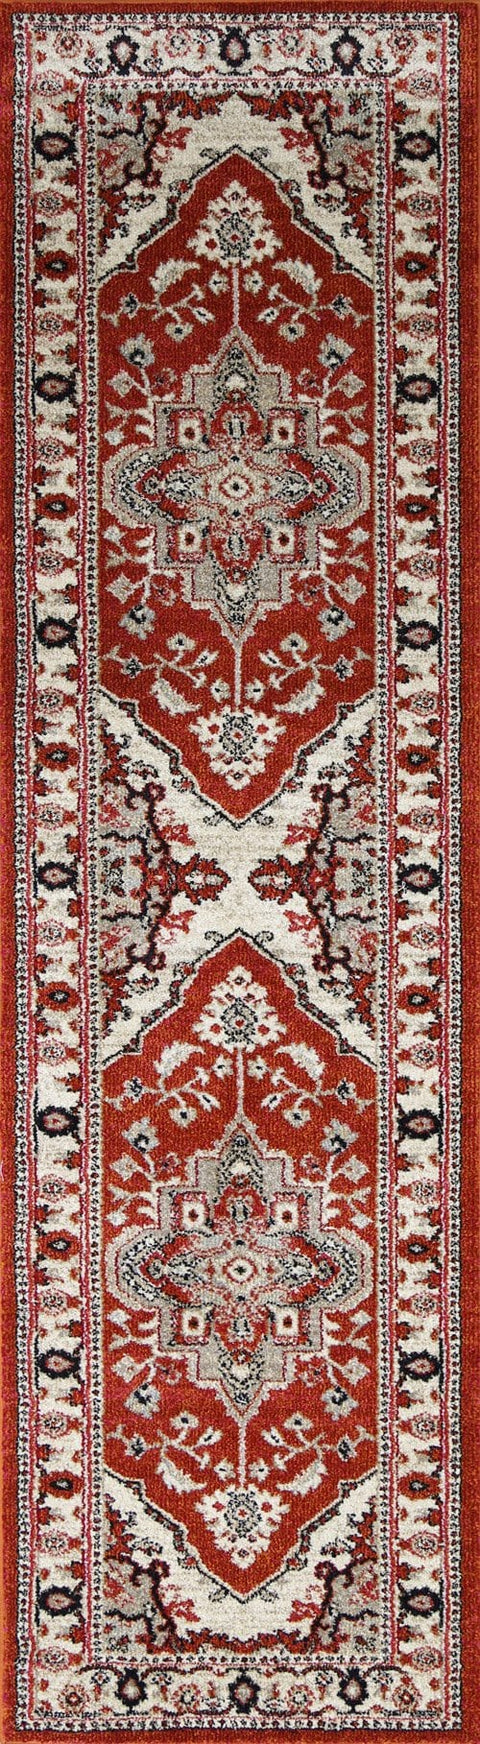 Ojai Red Orange and Pink Distressed Medallion Runner Rug